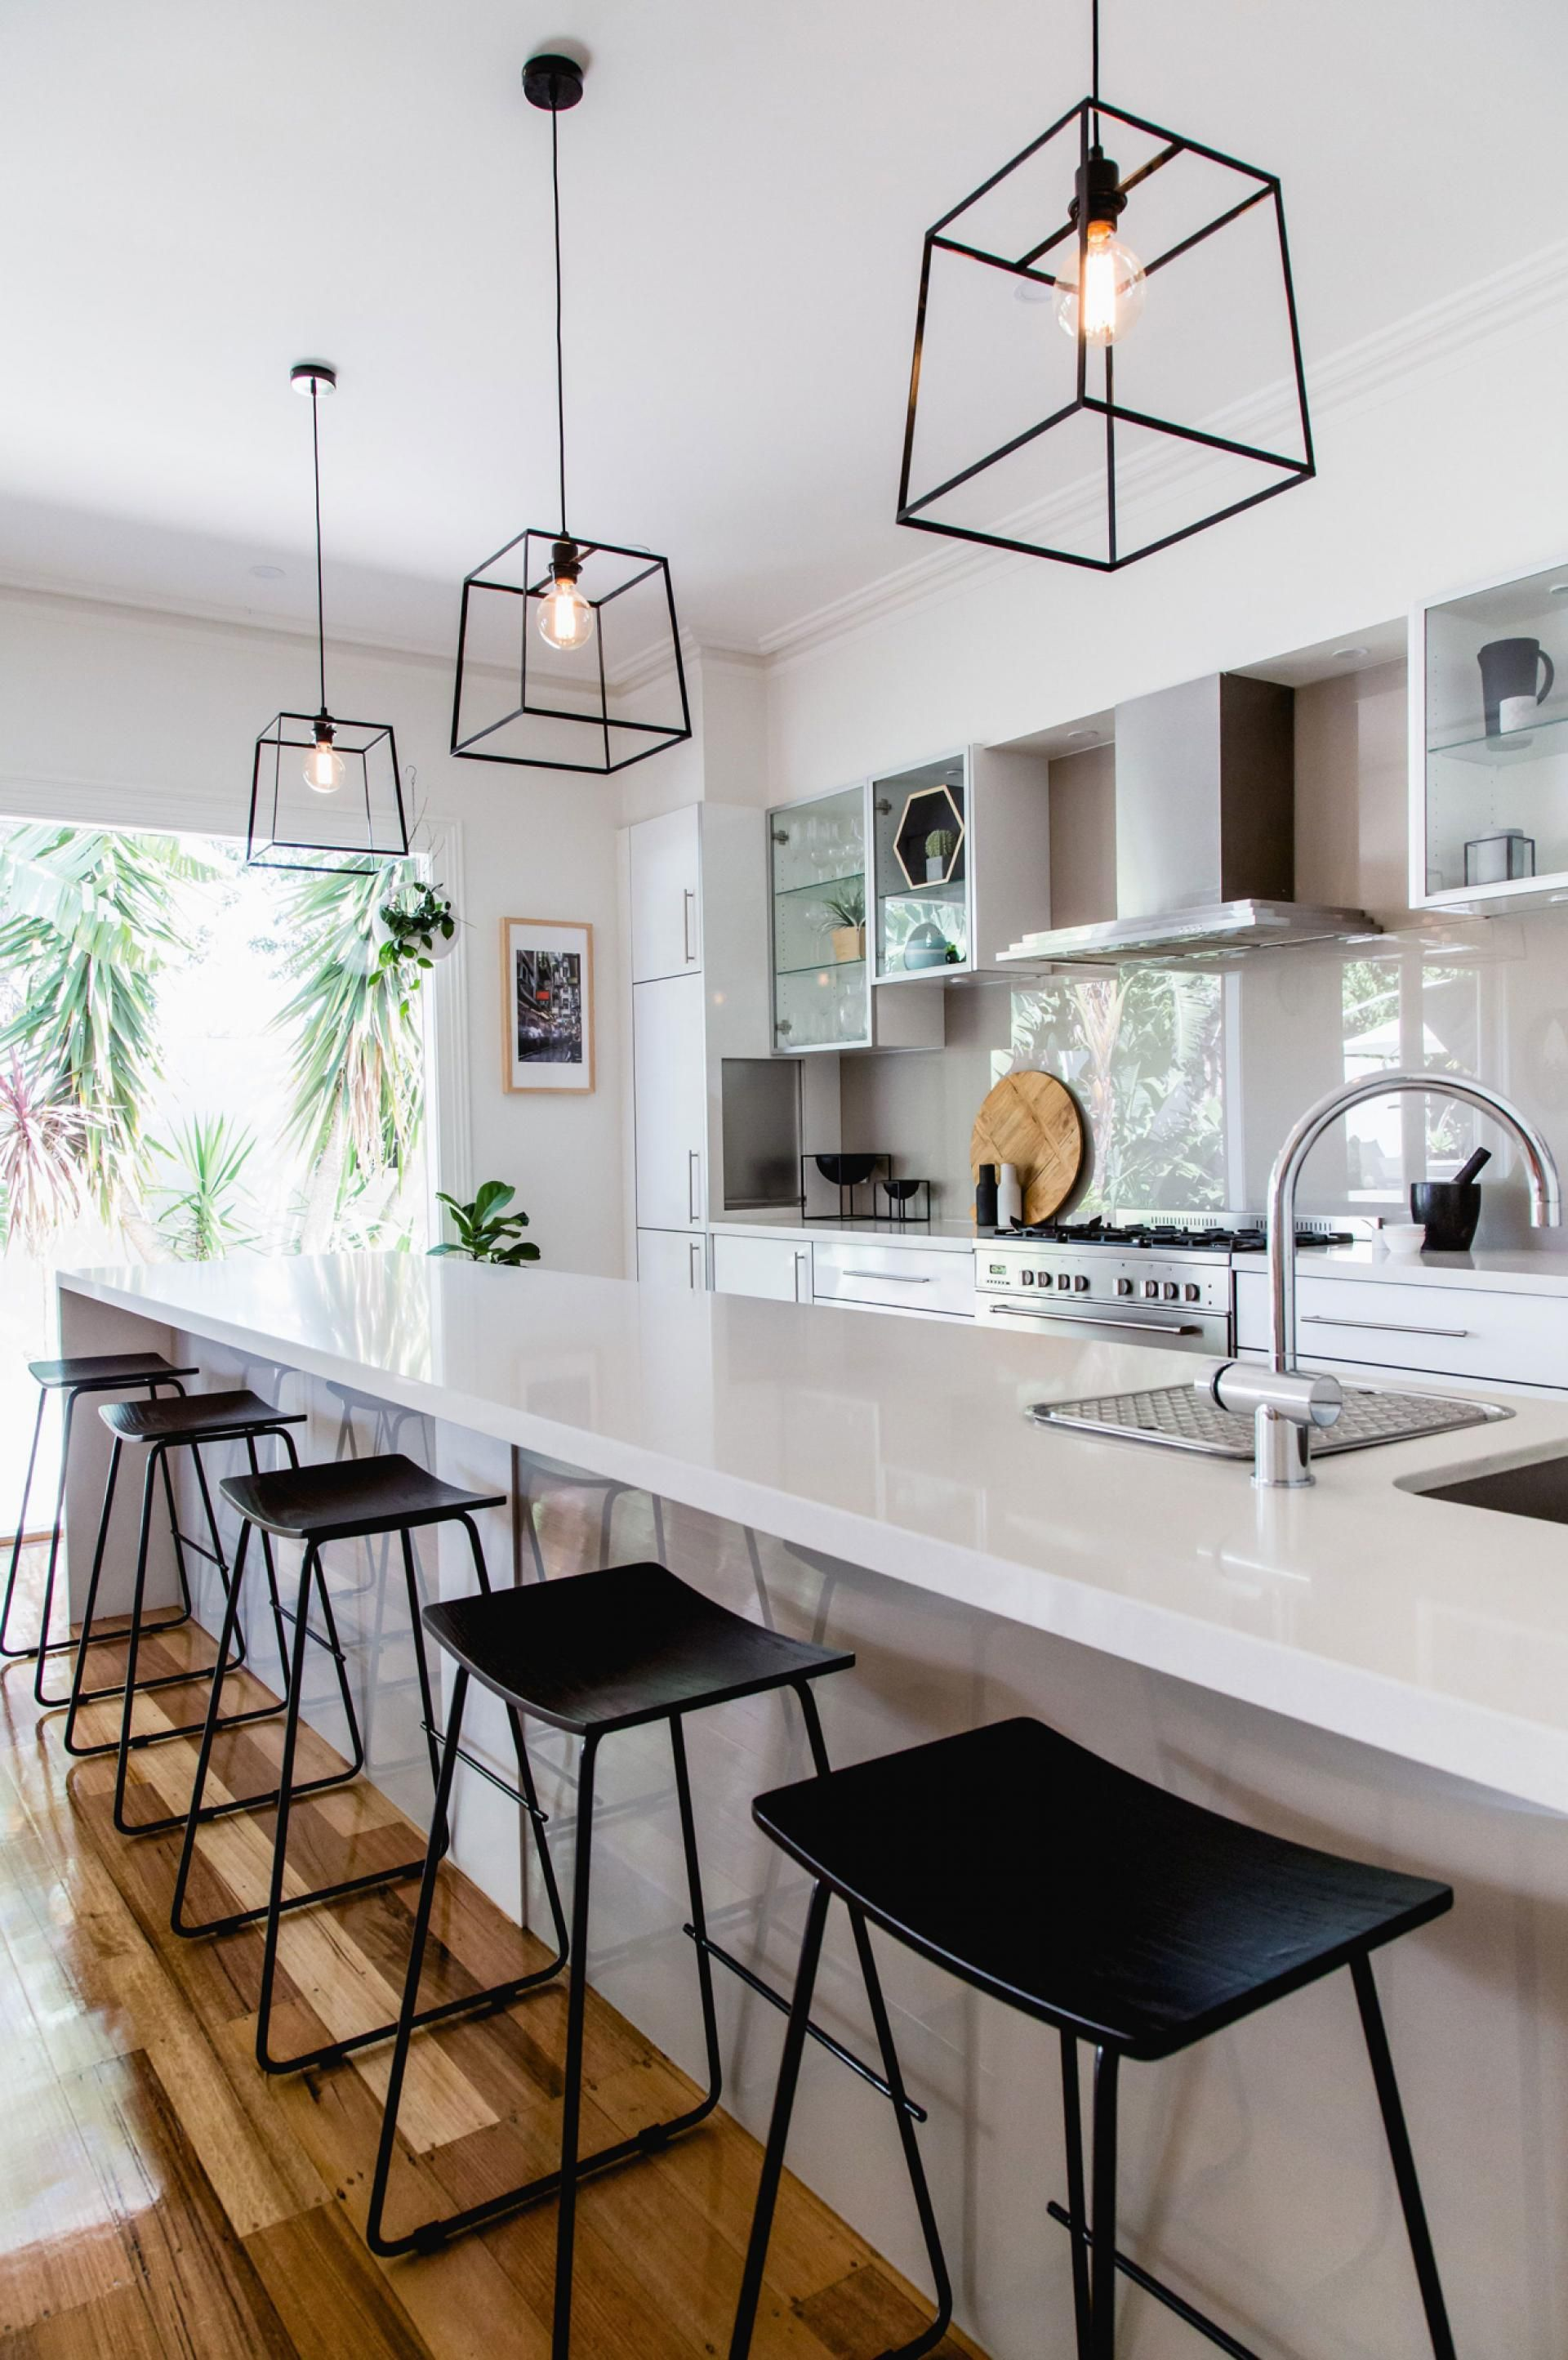 Kitchen Pendant Lights Island Remodel Kitchens That Get Right Photography By Suzi Appel Designed Bask Interiors Baskinteriors Com Au